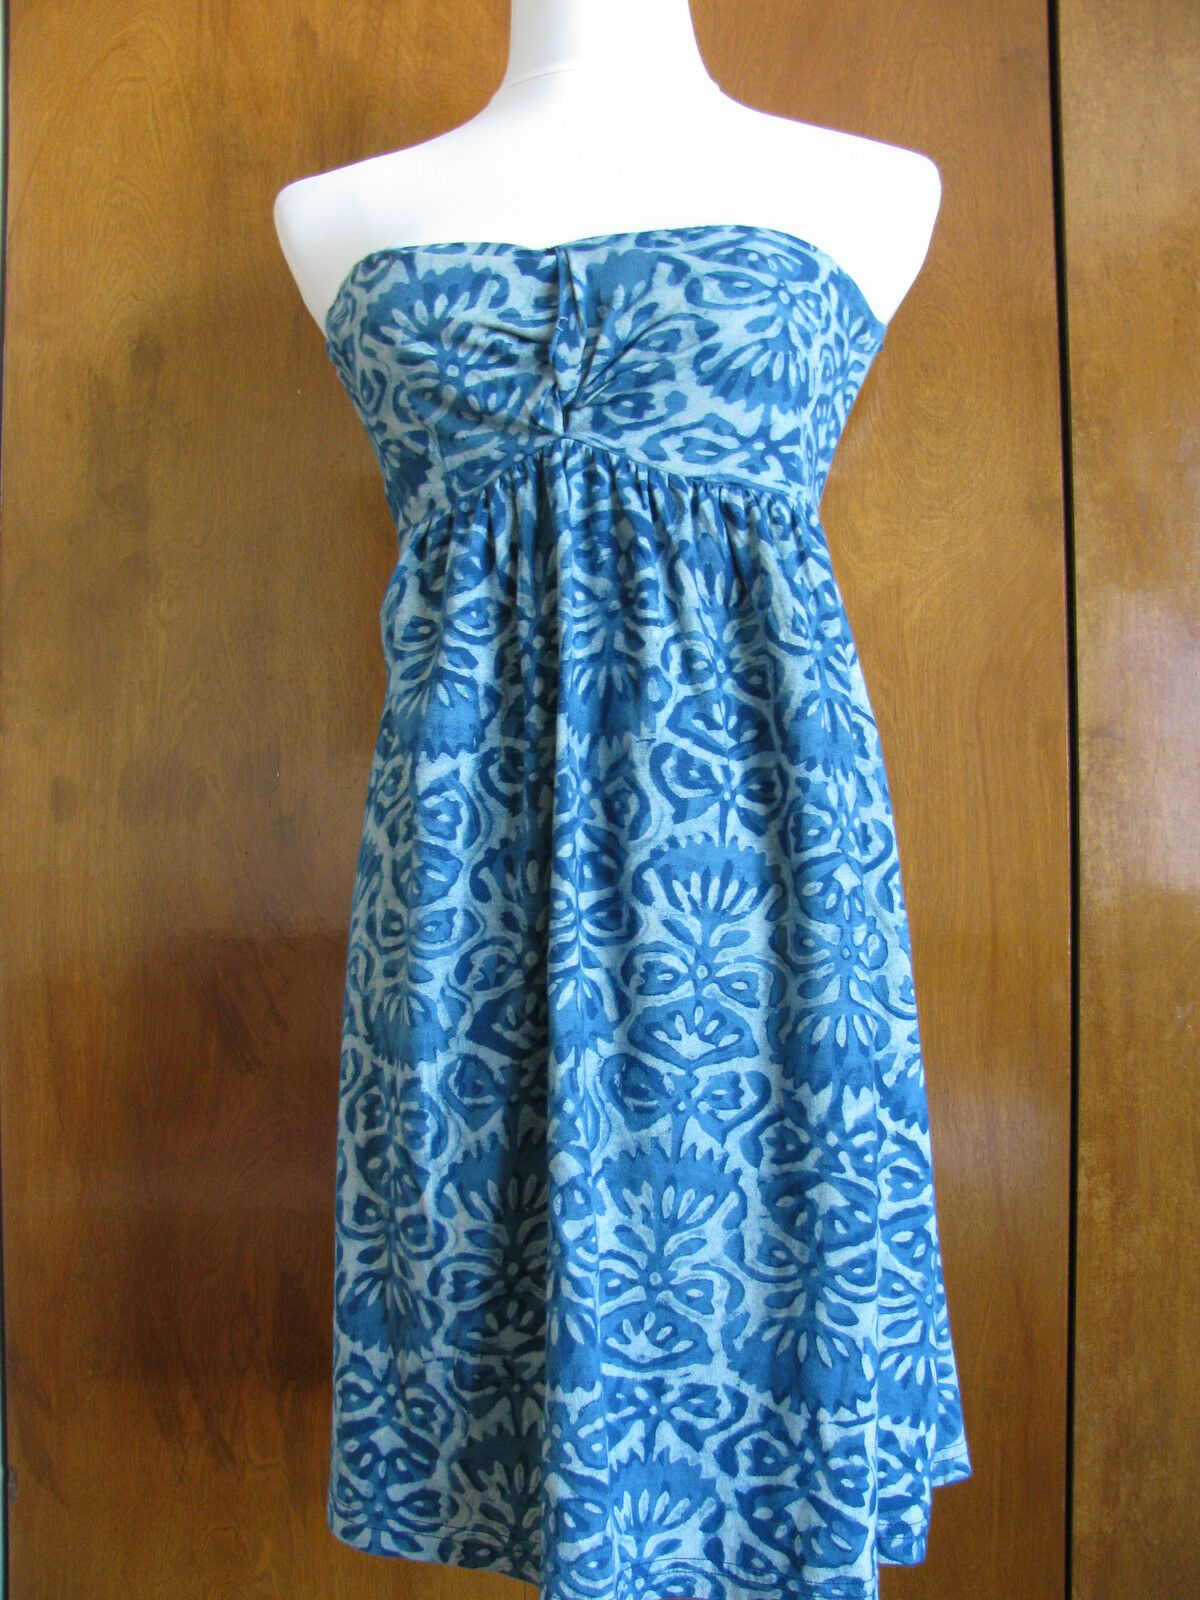 f4a0d2cd Denim & Supply Ralph Lauren women's twist mini colord NWT dress size Large.  Prevention · Kids · Patient Stories · General Health · News · Diane von ...